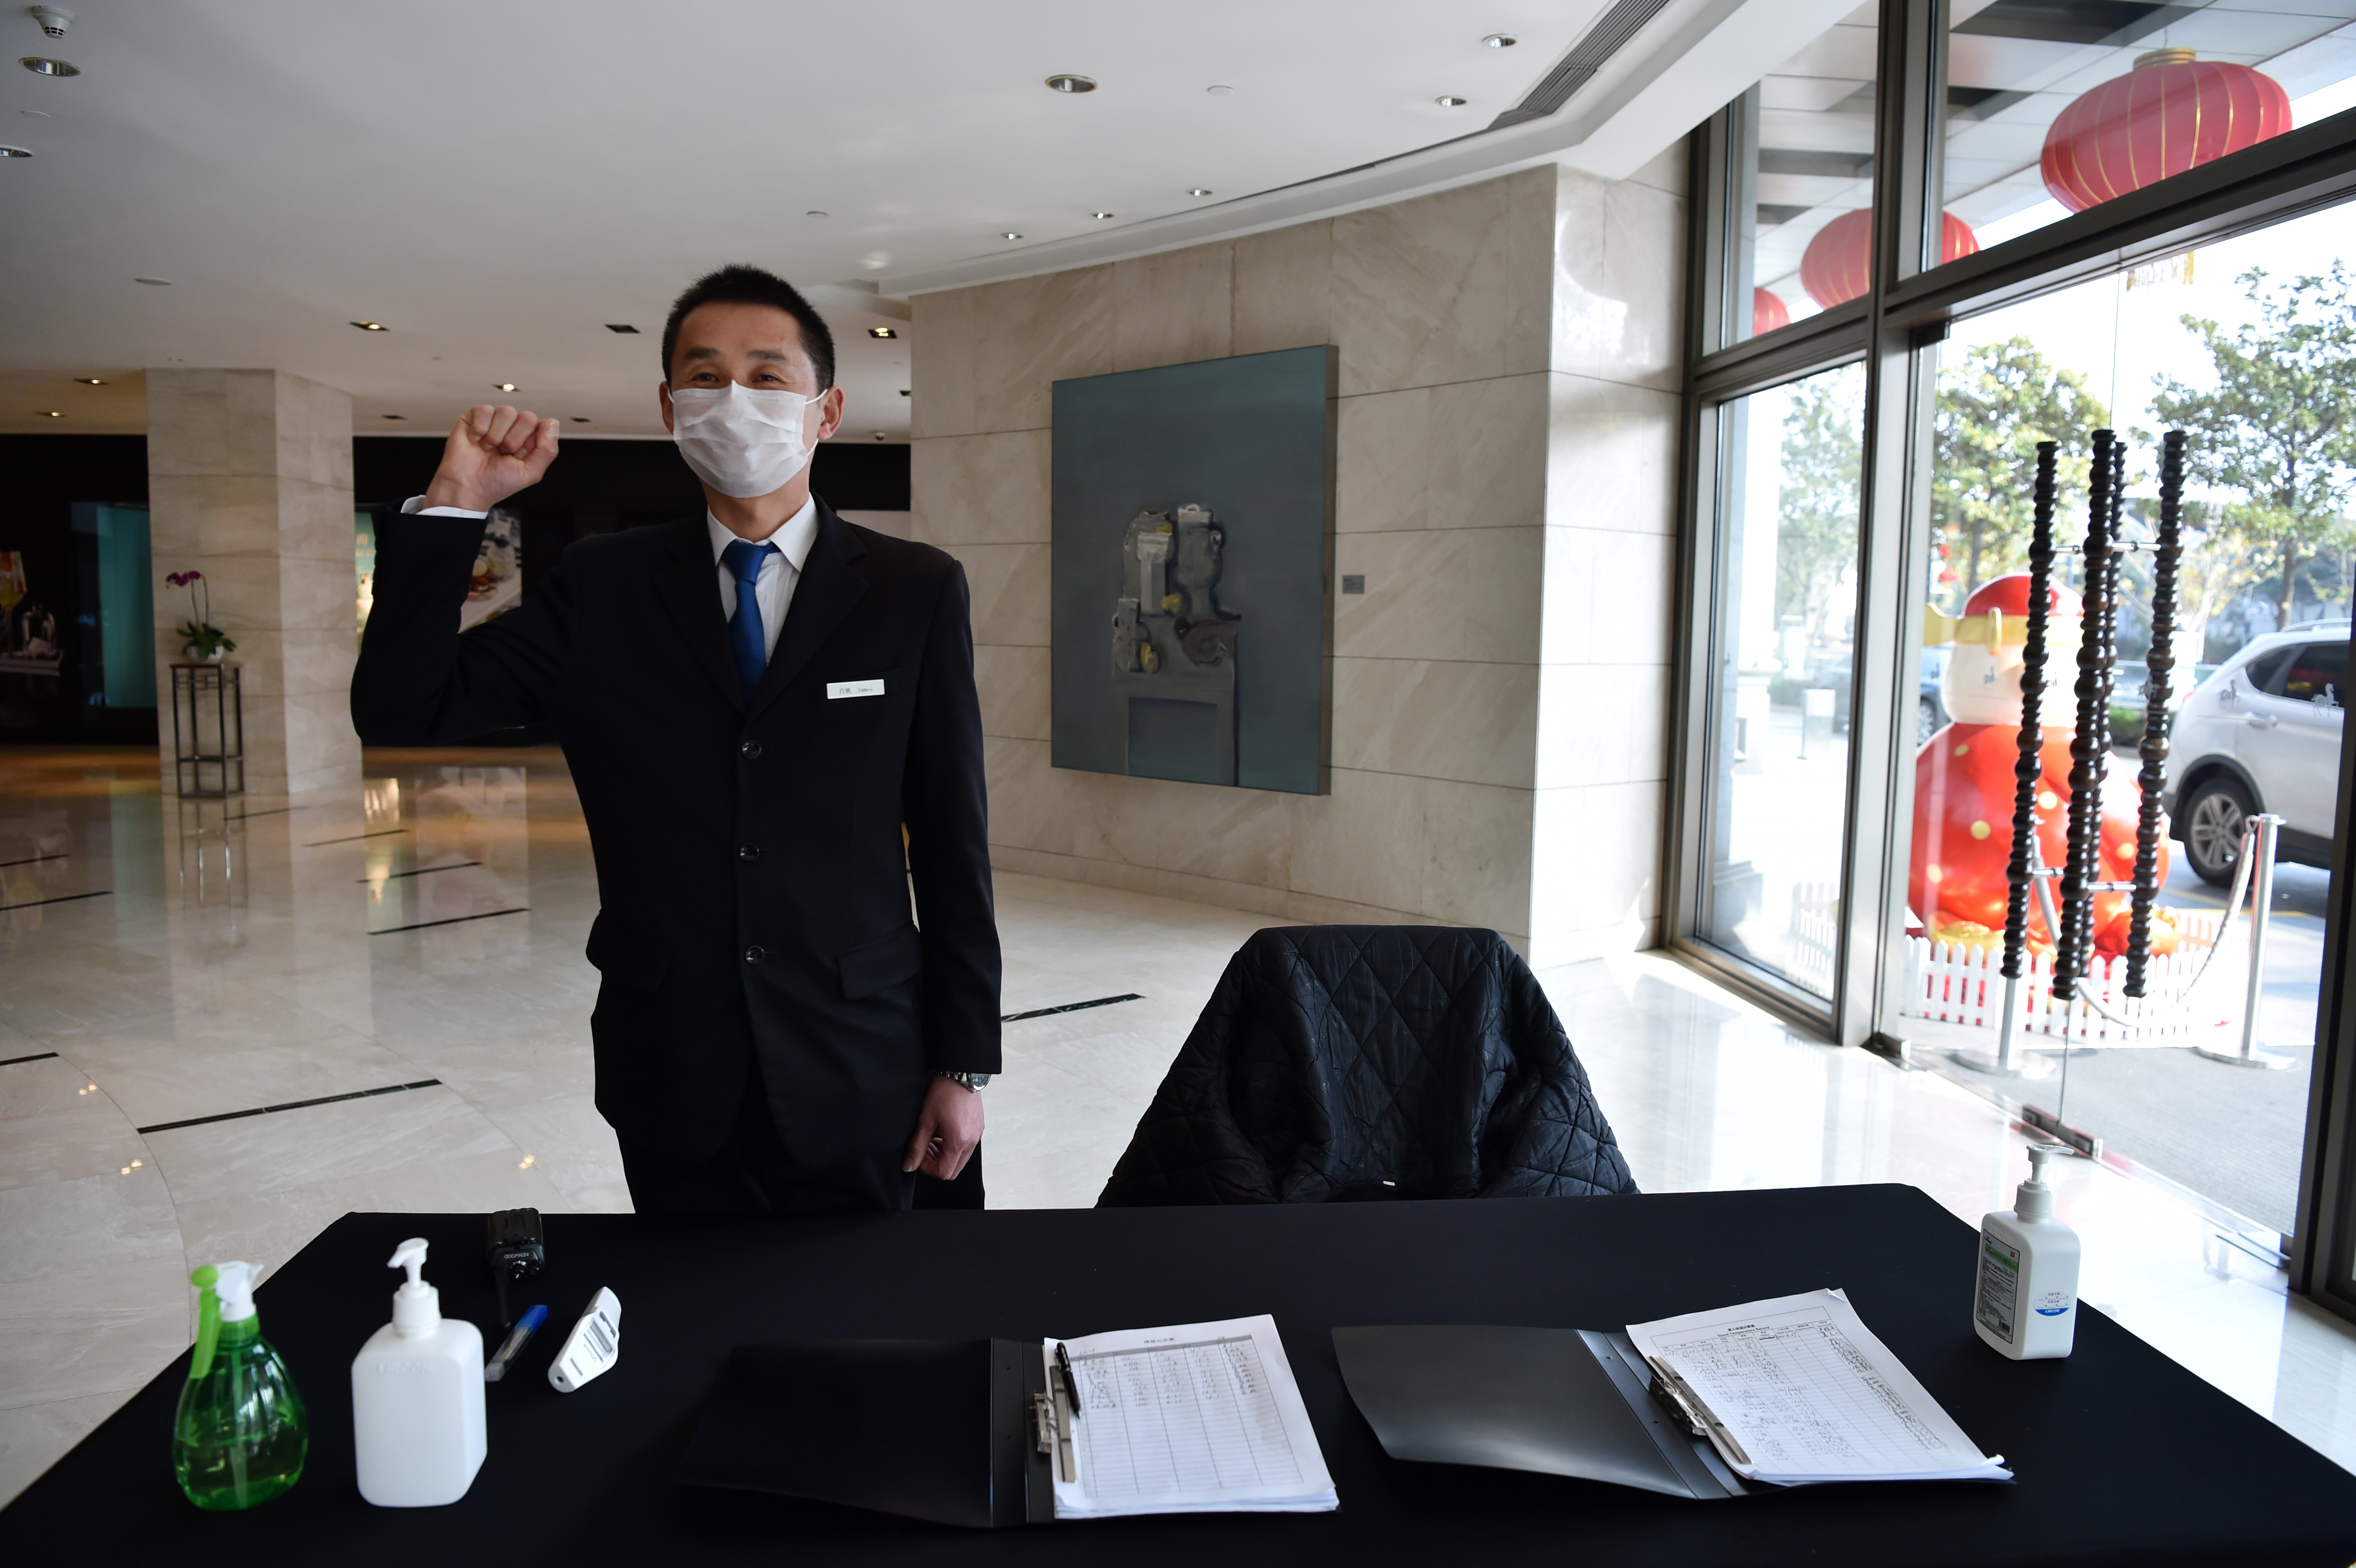 A Wuhan hotel employee ready to take the temperature of anyone who enters the building on January 29, 2020.